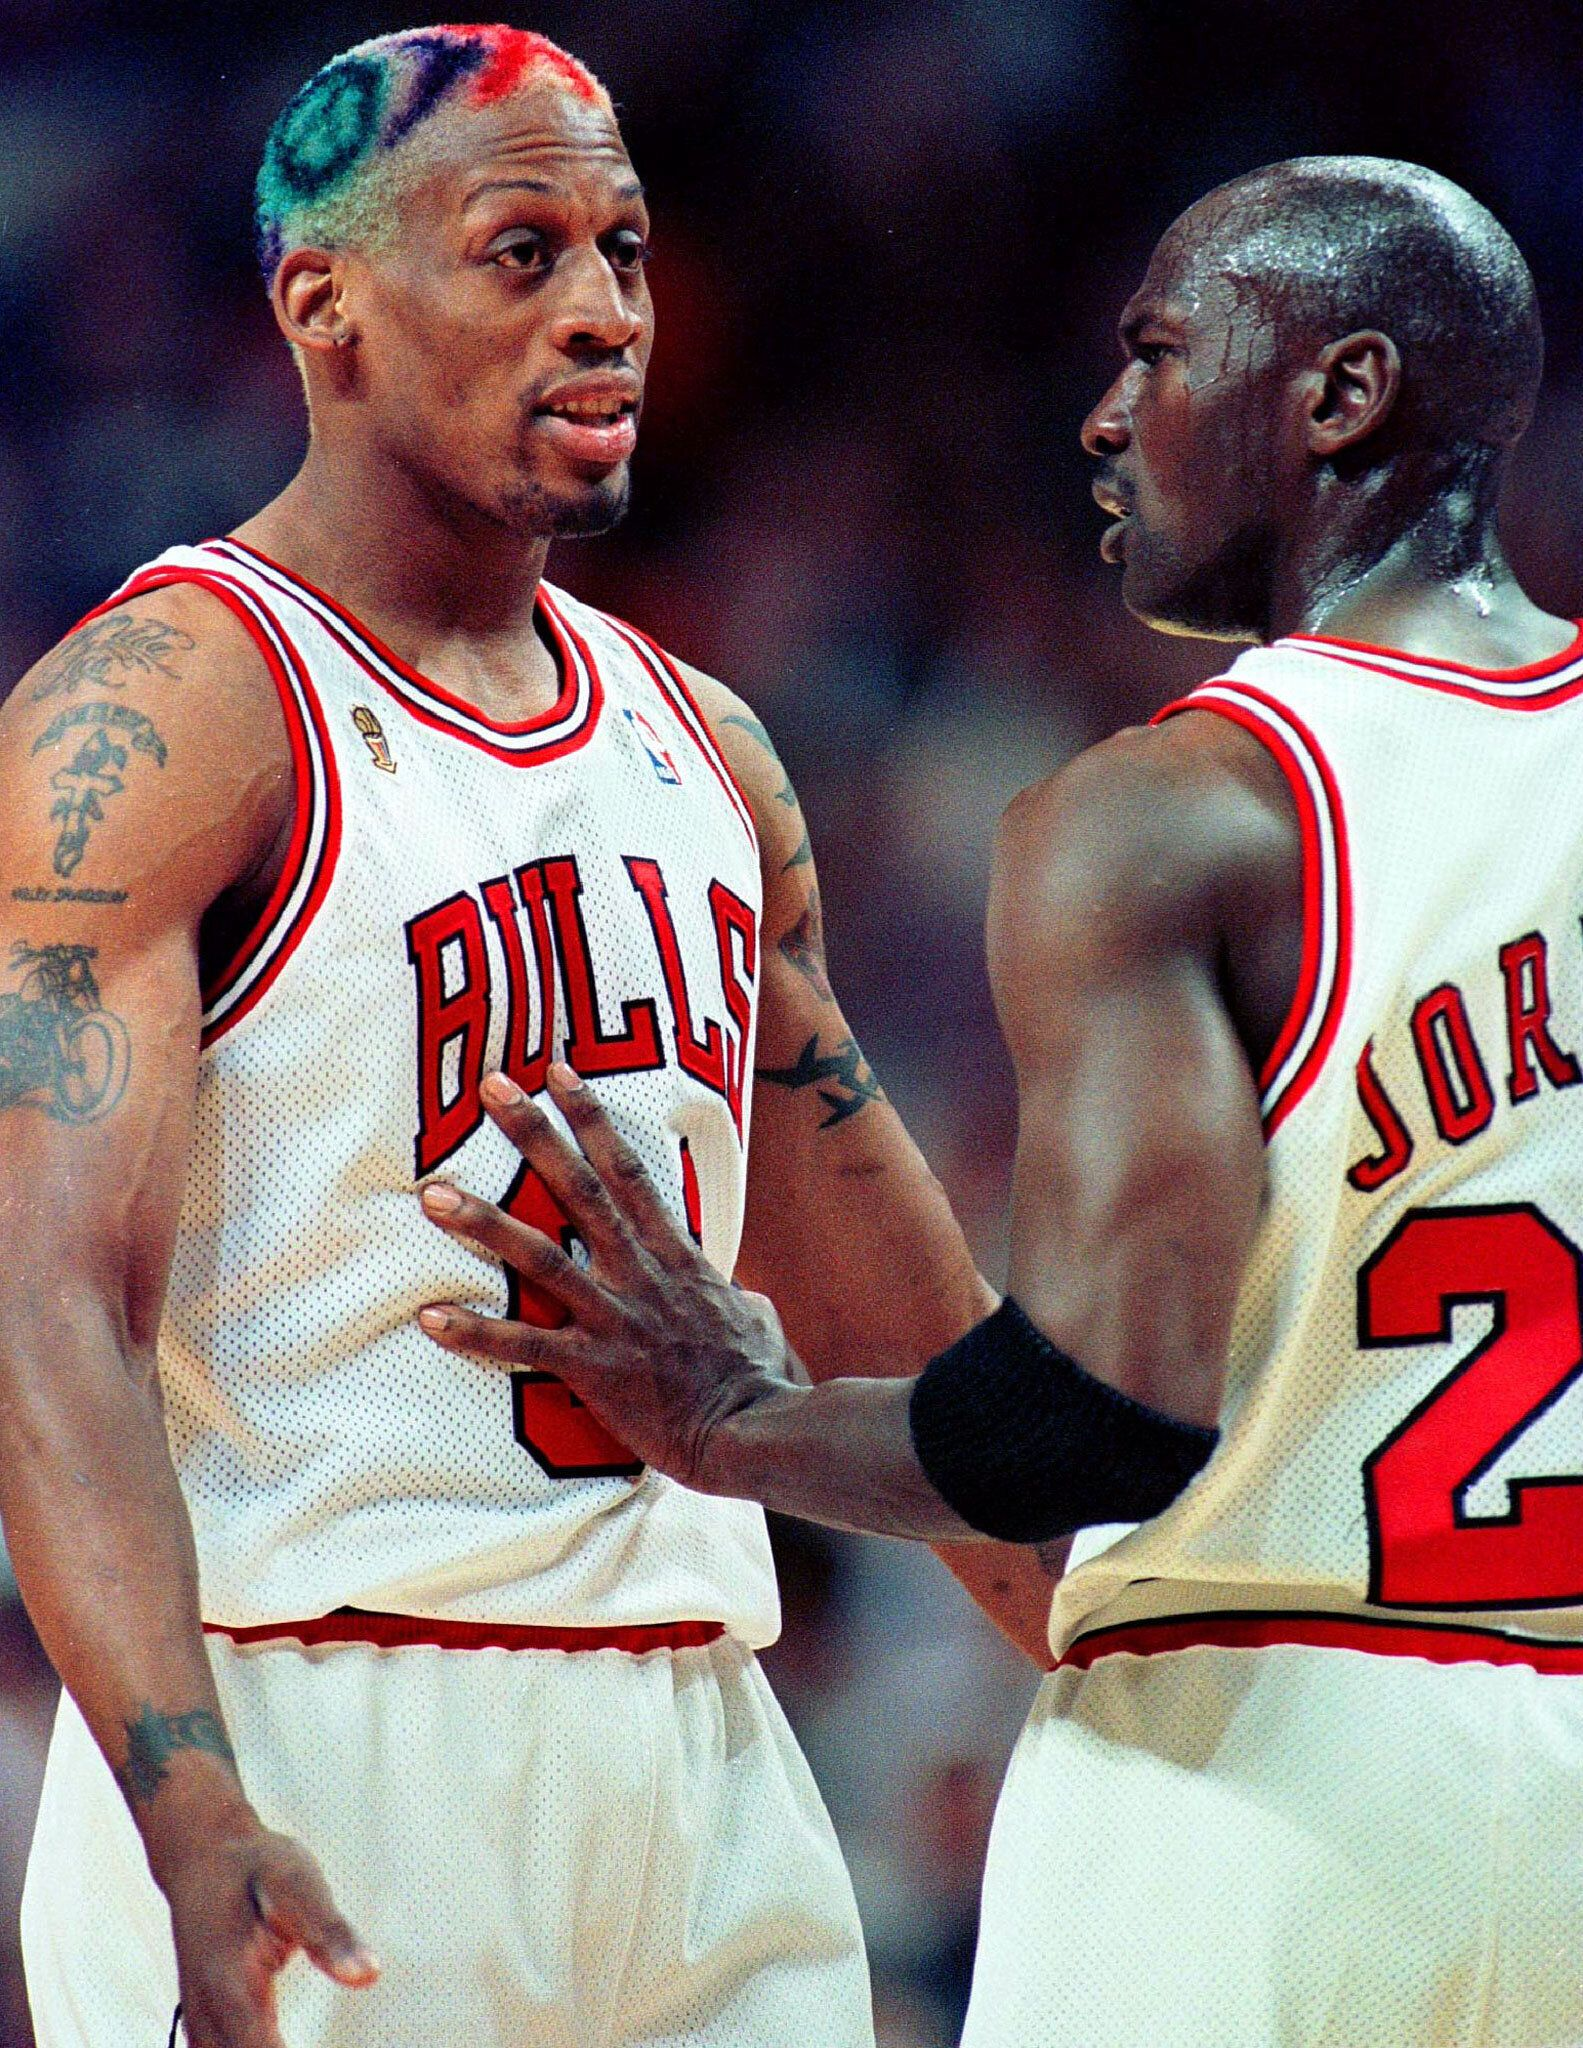 Dennis Rodman Haircut : dennis, rodman, haircut, Photos, Dennis, Rodman's, Iconic,, Ridiculously, Colorful, HuffPost